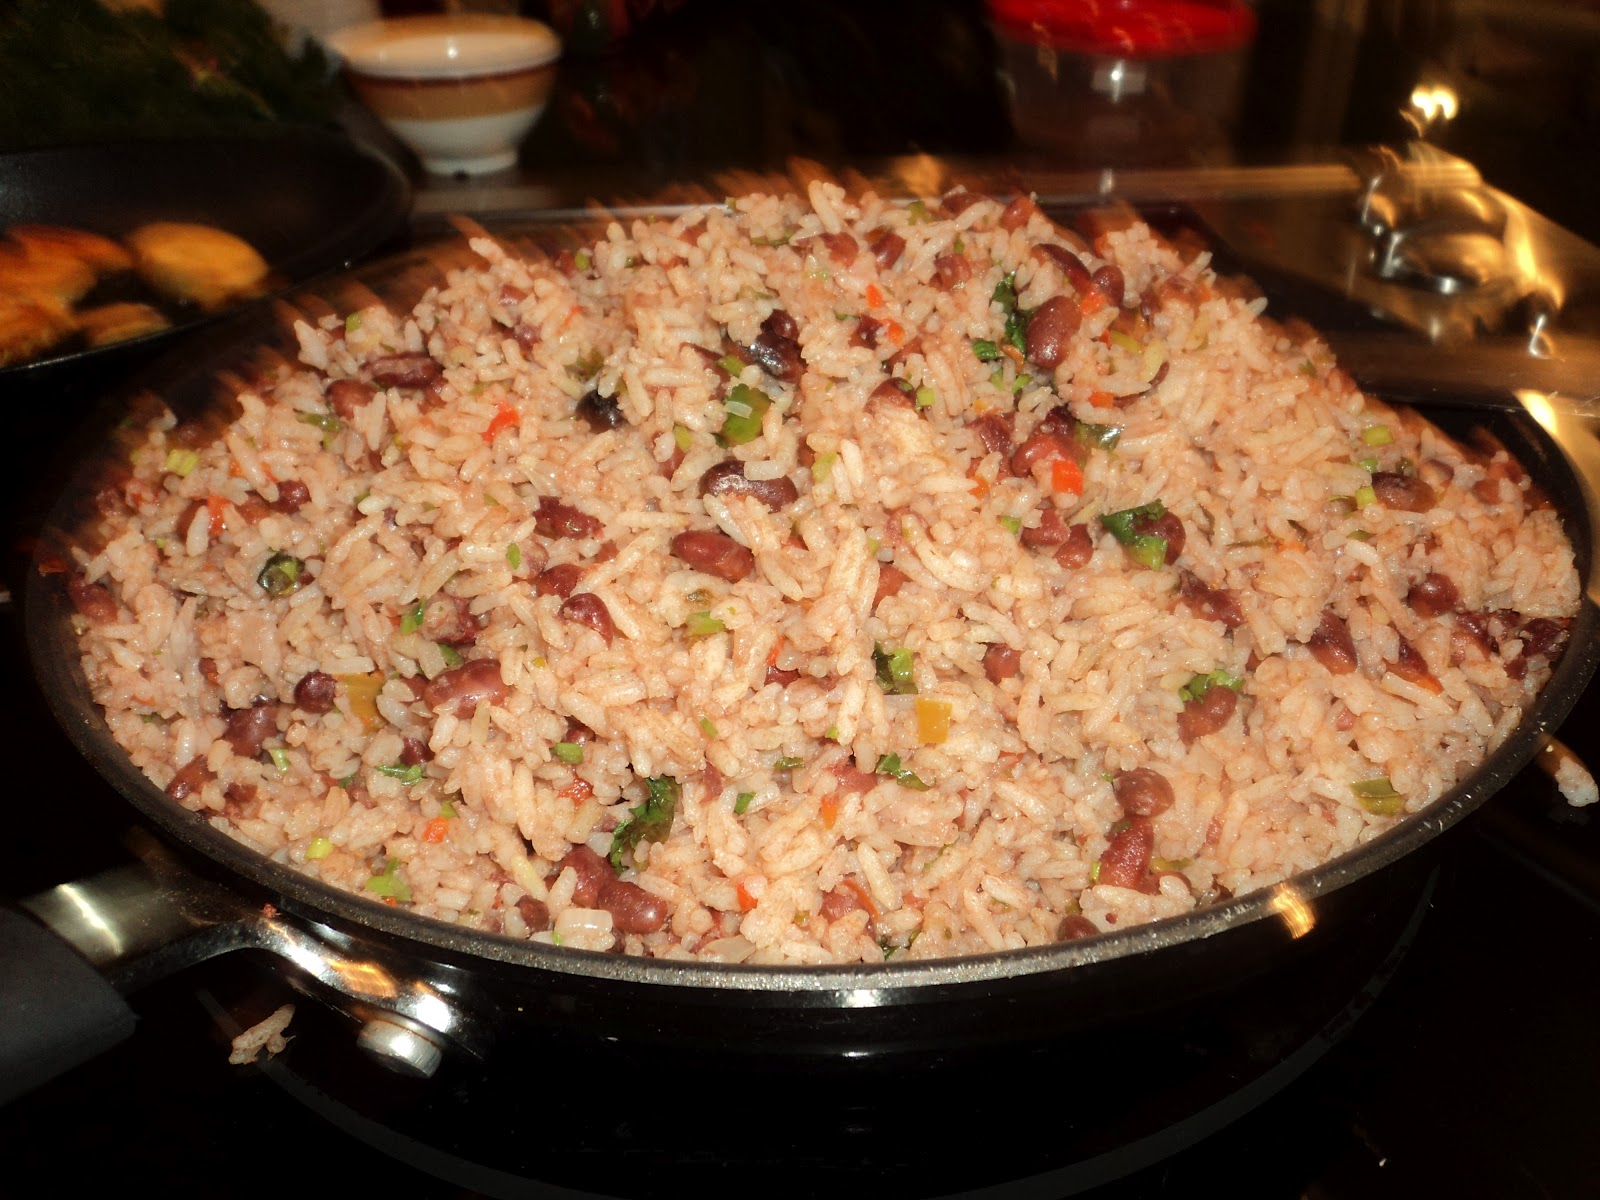 arroz gallo pinto